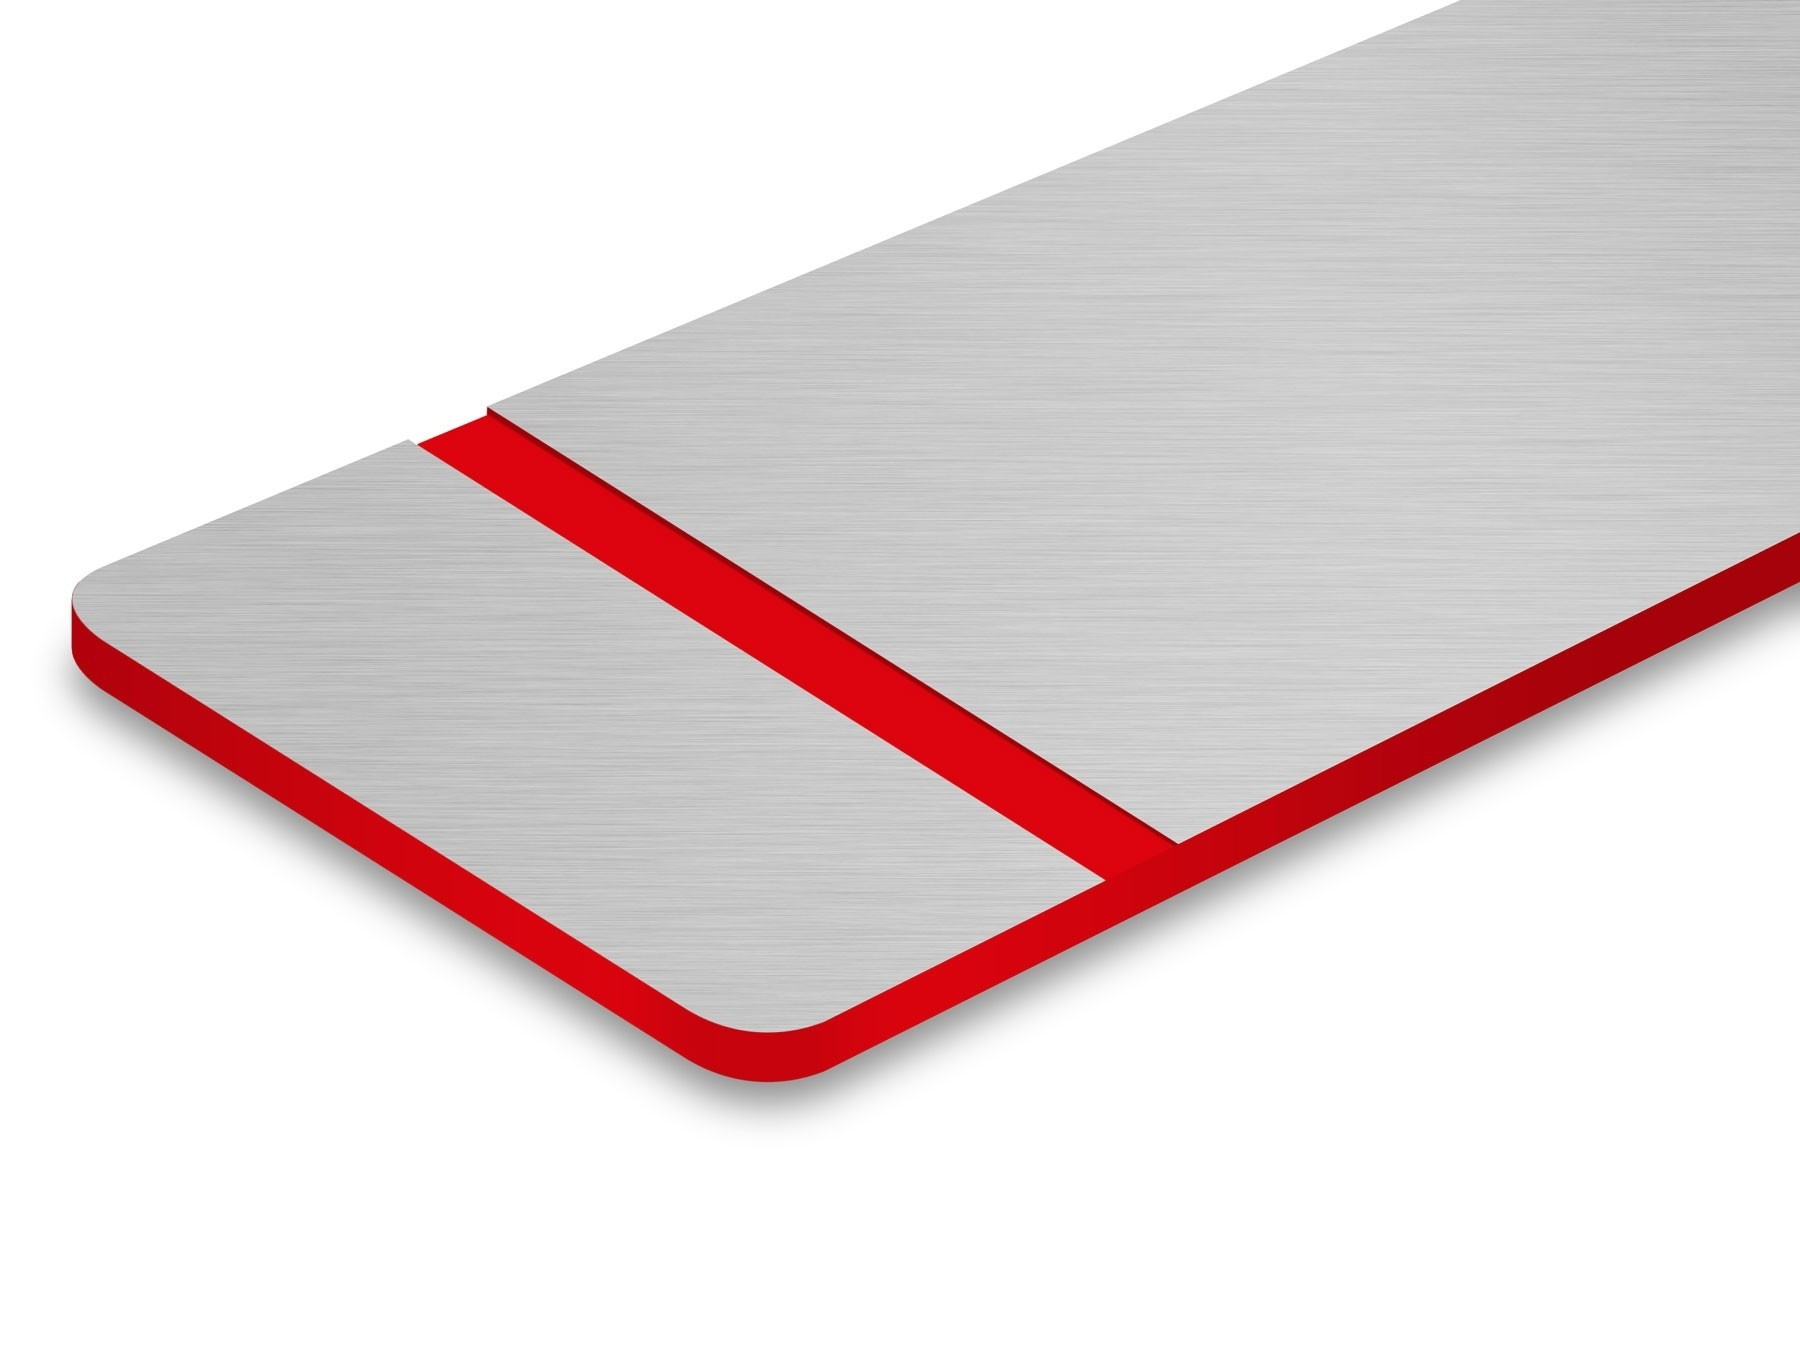 TroLase Metallic Plus, Stainless Steel Brushed/Red, 2ply, 1.6 mm